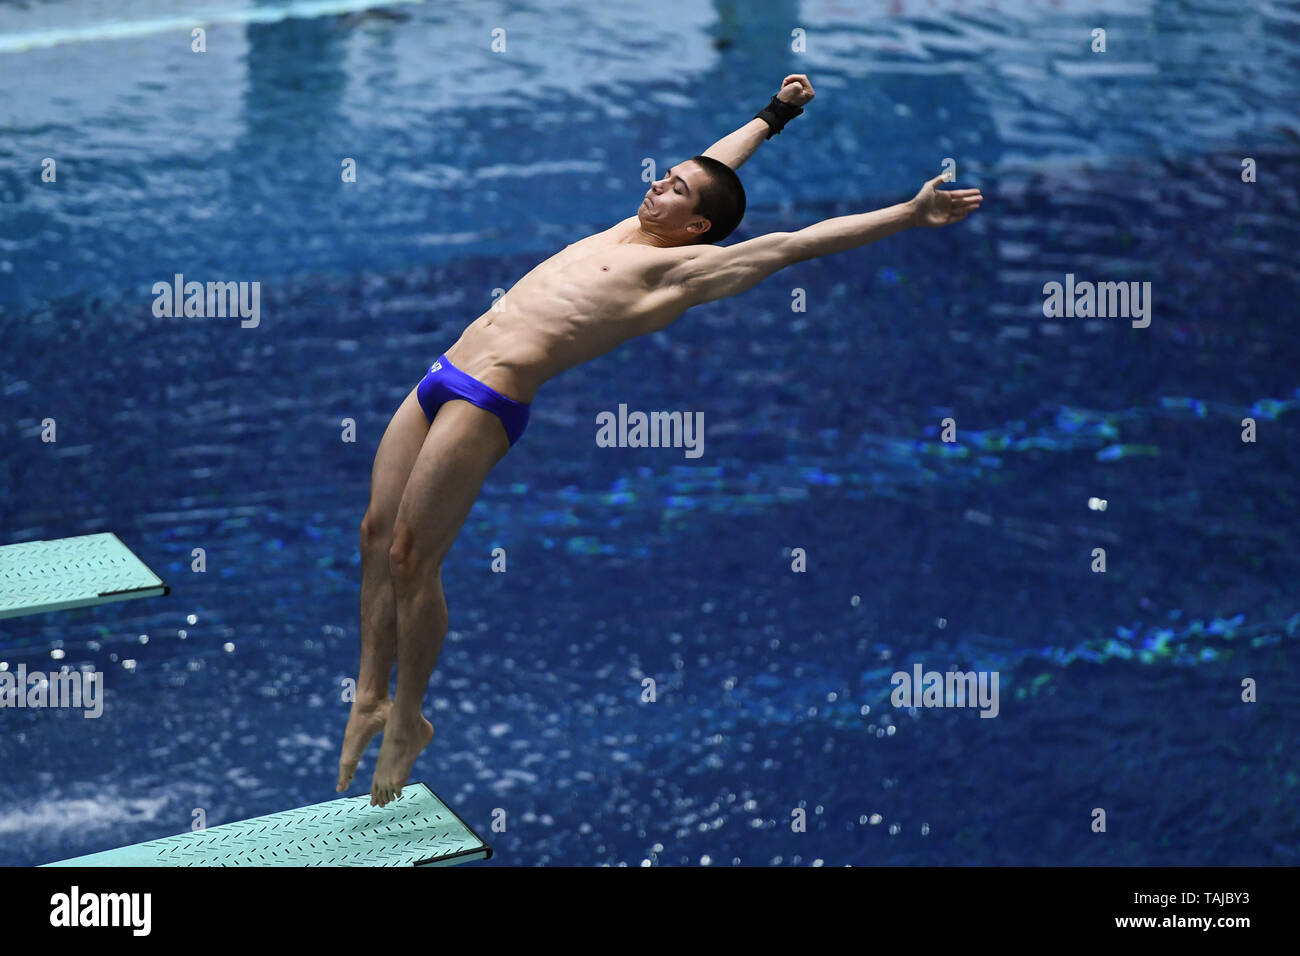 Indianapolis, Indiana, USA. 25th May, 2019. LYLE YOST dives at the University of Indiana Natatorium in Indianapolis, Indiana. Credit: Amy Sanderson/ZUMA Wire/Alamy Live News - Stock Image